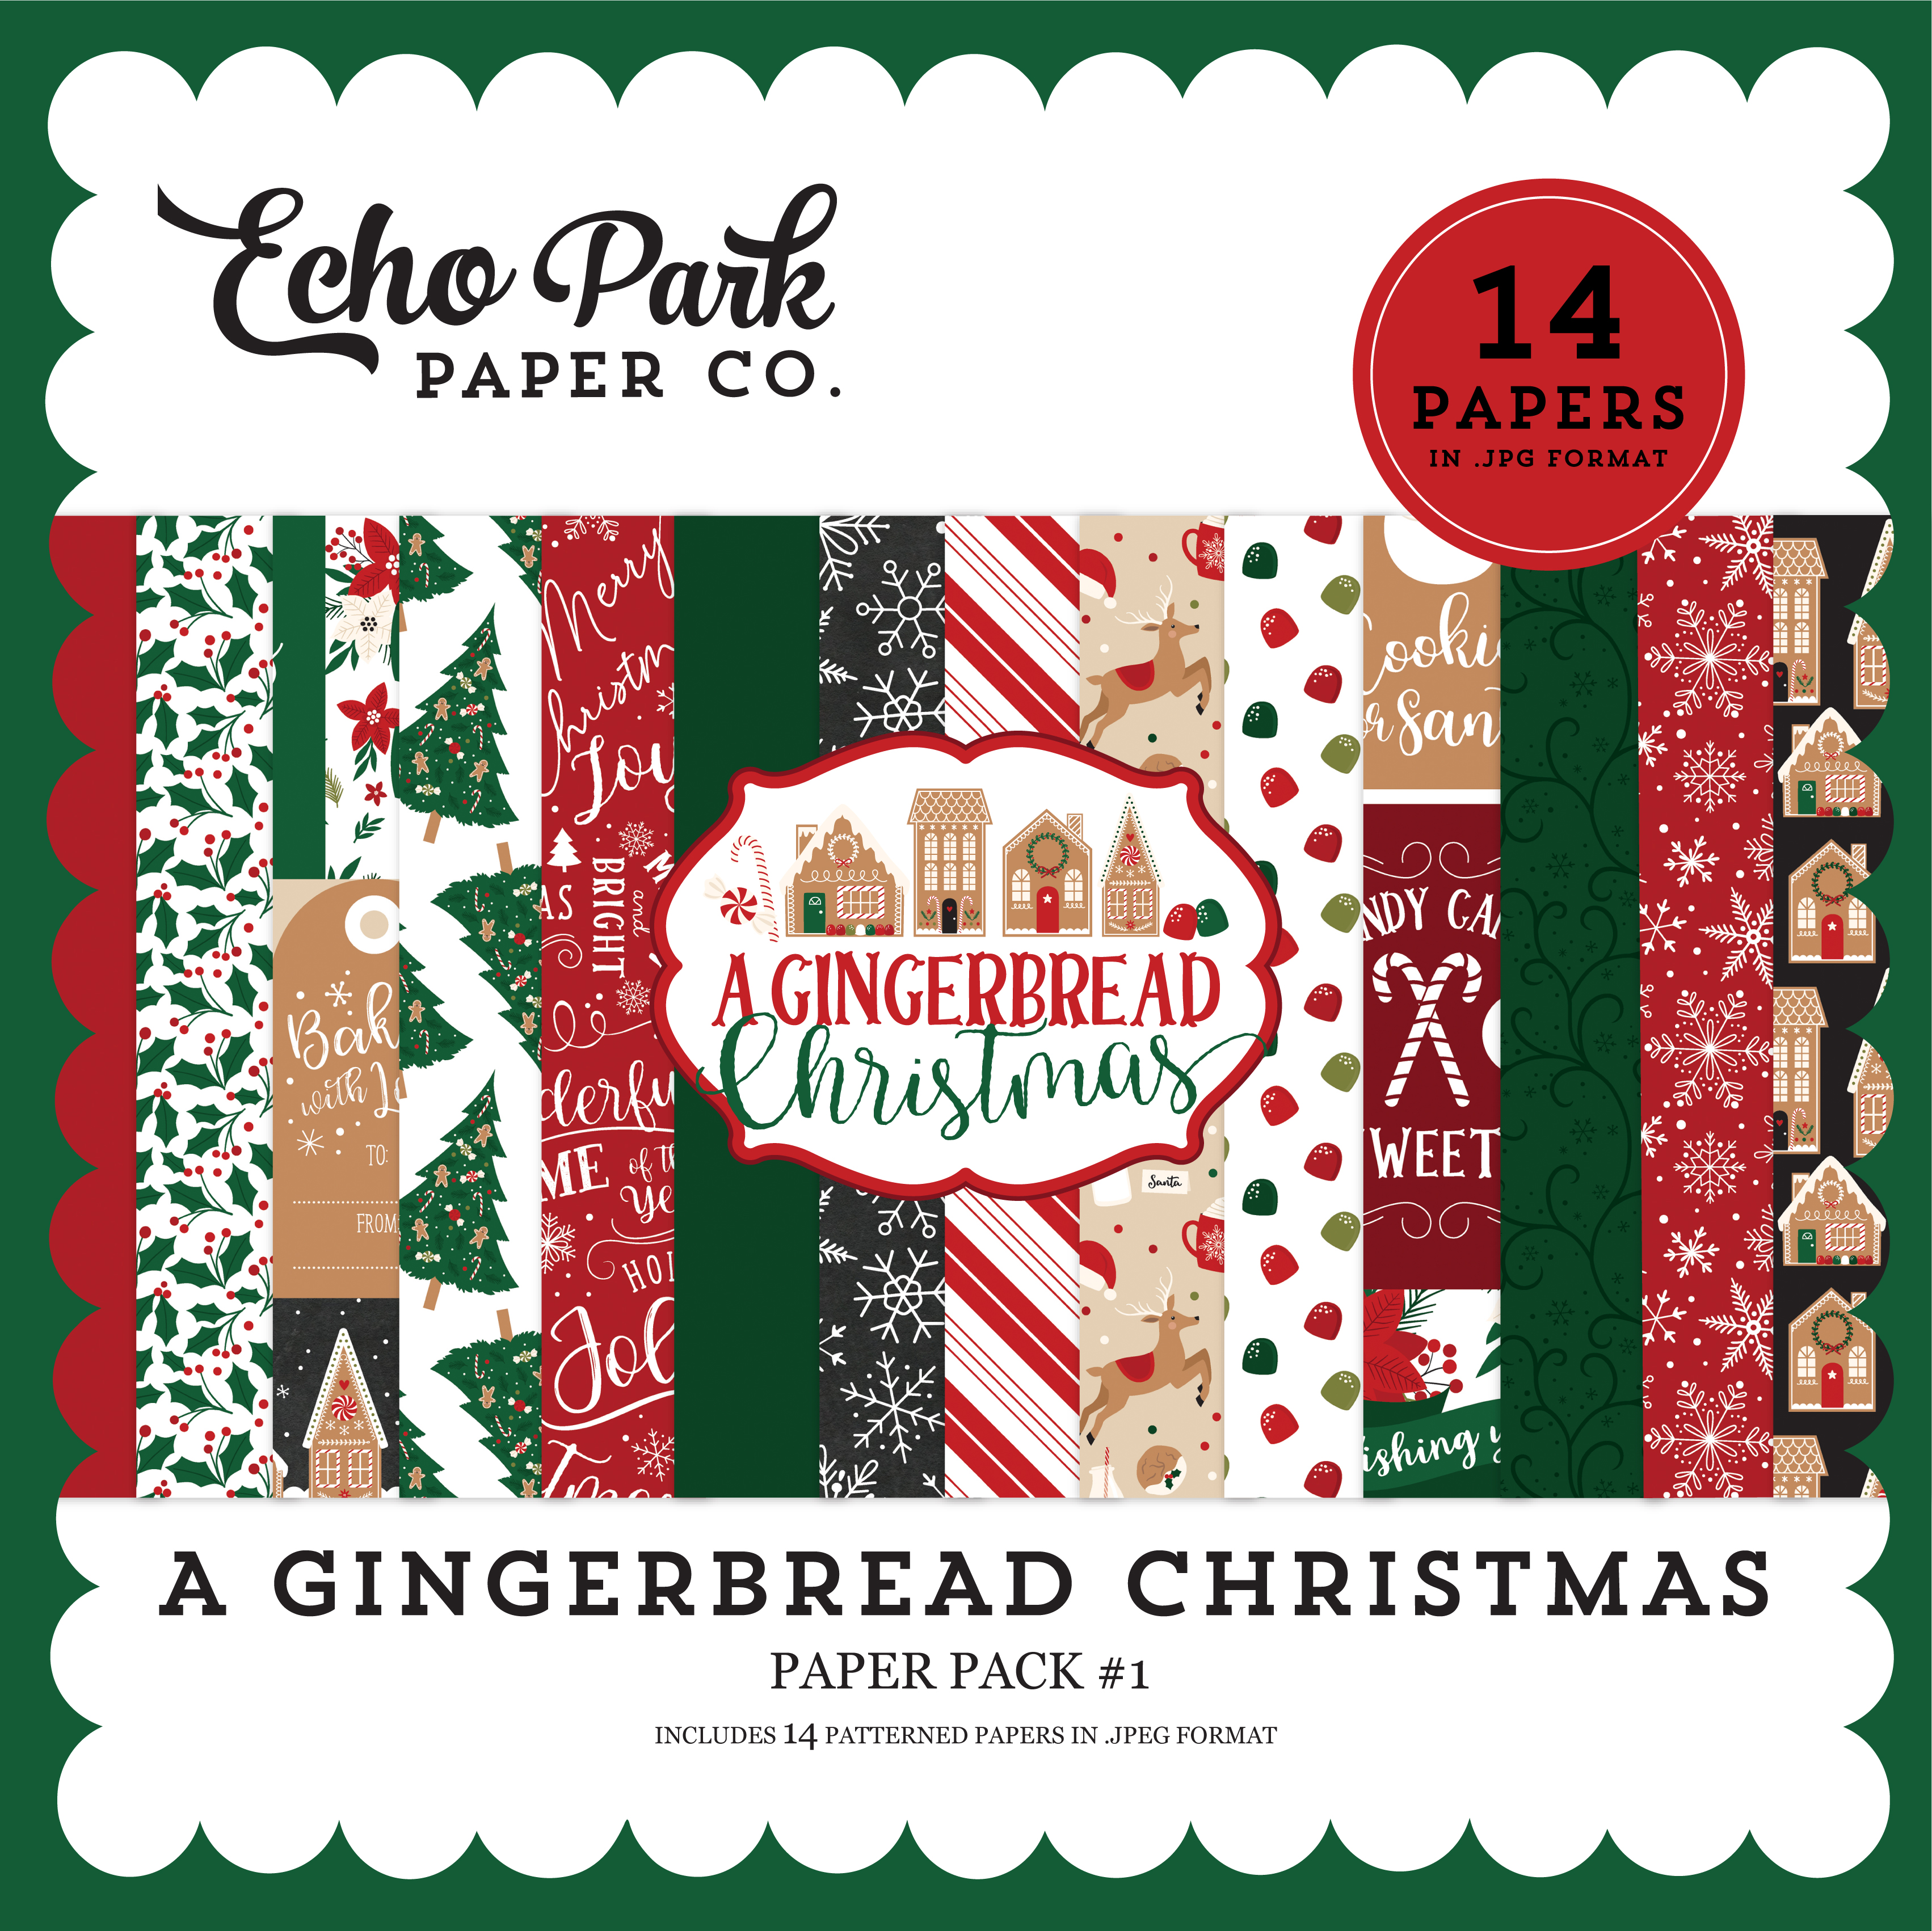 A Gingerbread Christmas Paper Pack #1